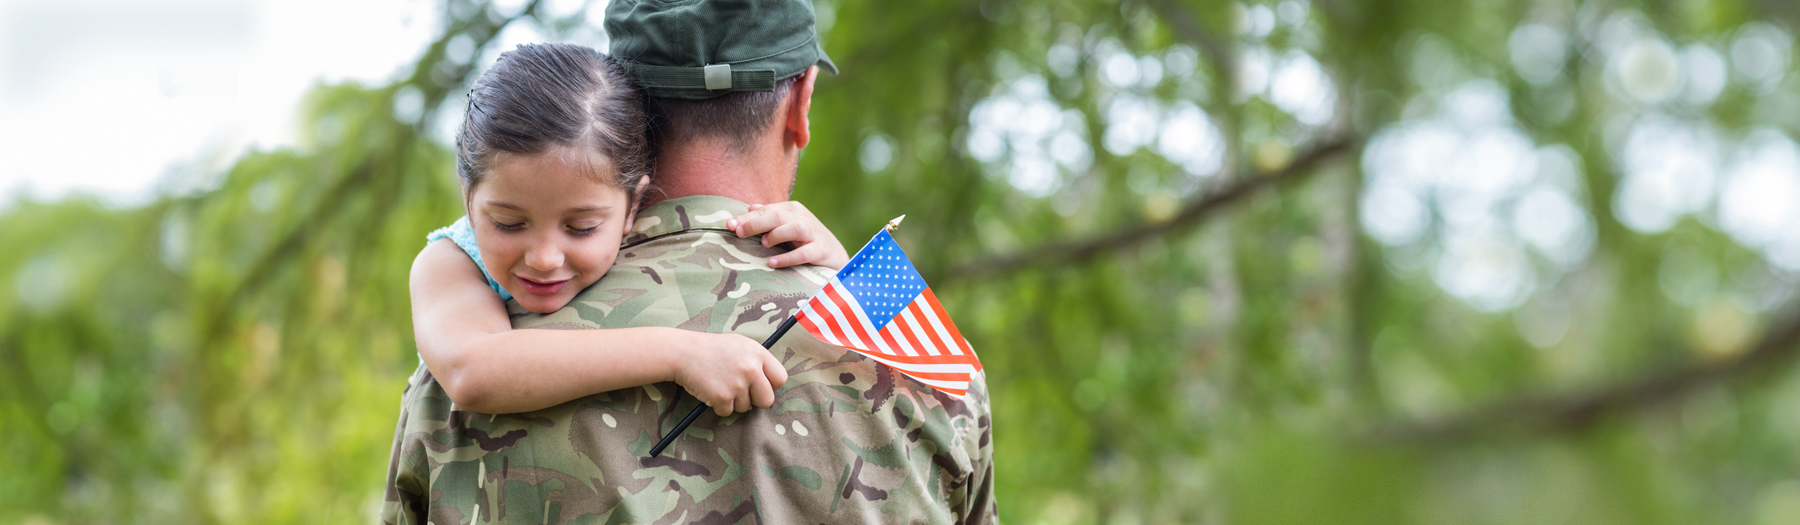 Image soldier embracing his daughter